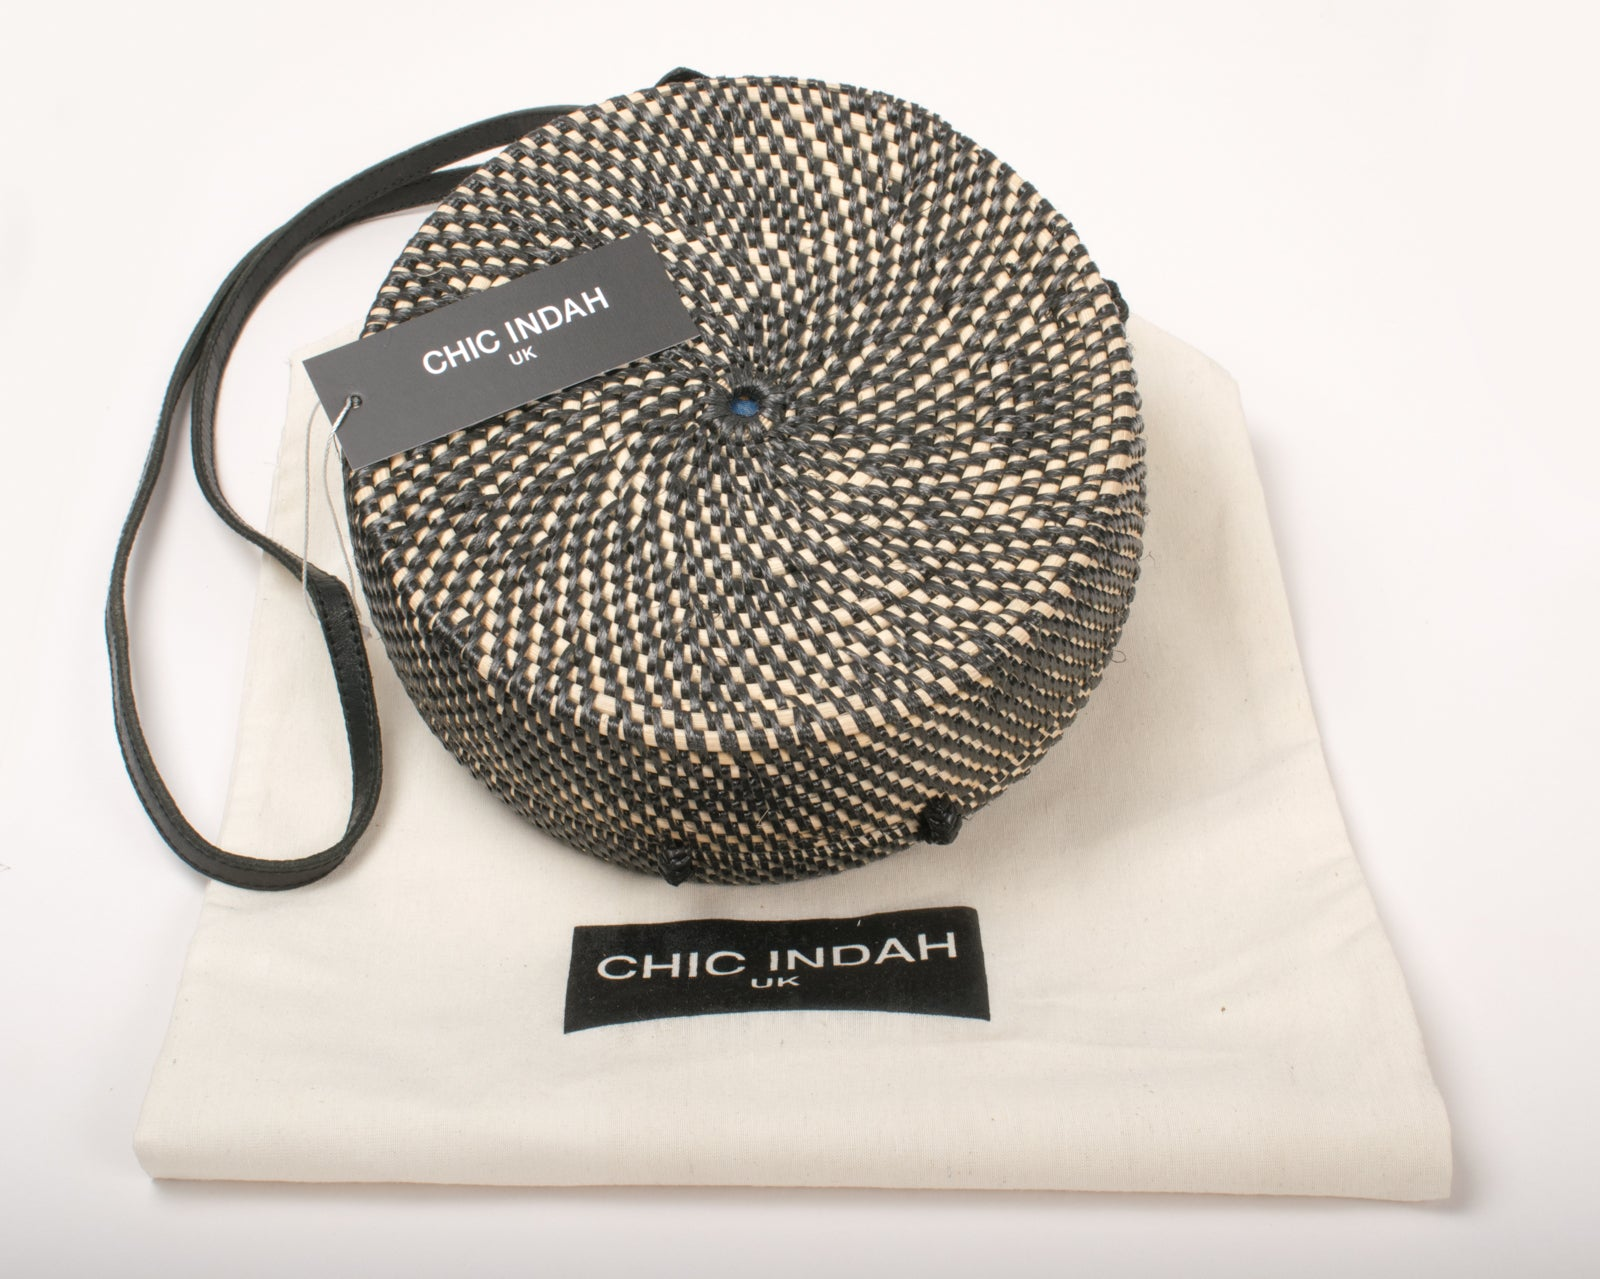 Chic Indah - Round Rattan Bag - Fashion Summer bag - Fashion bag